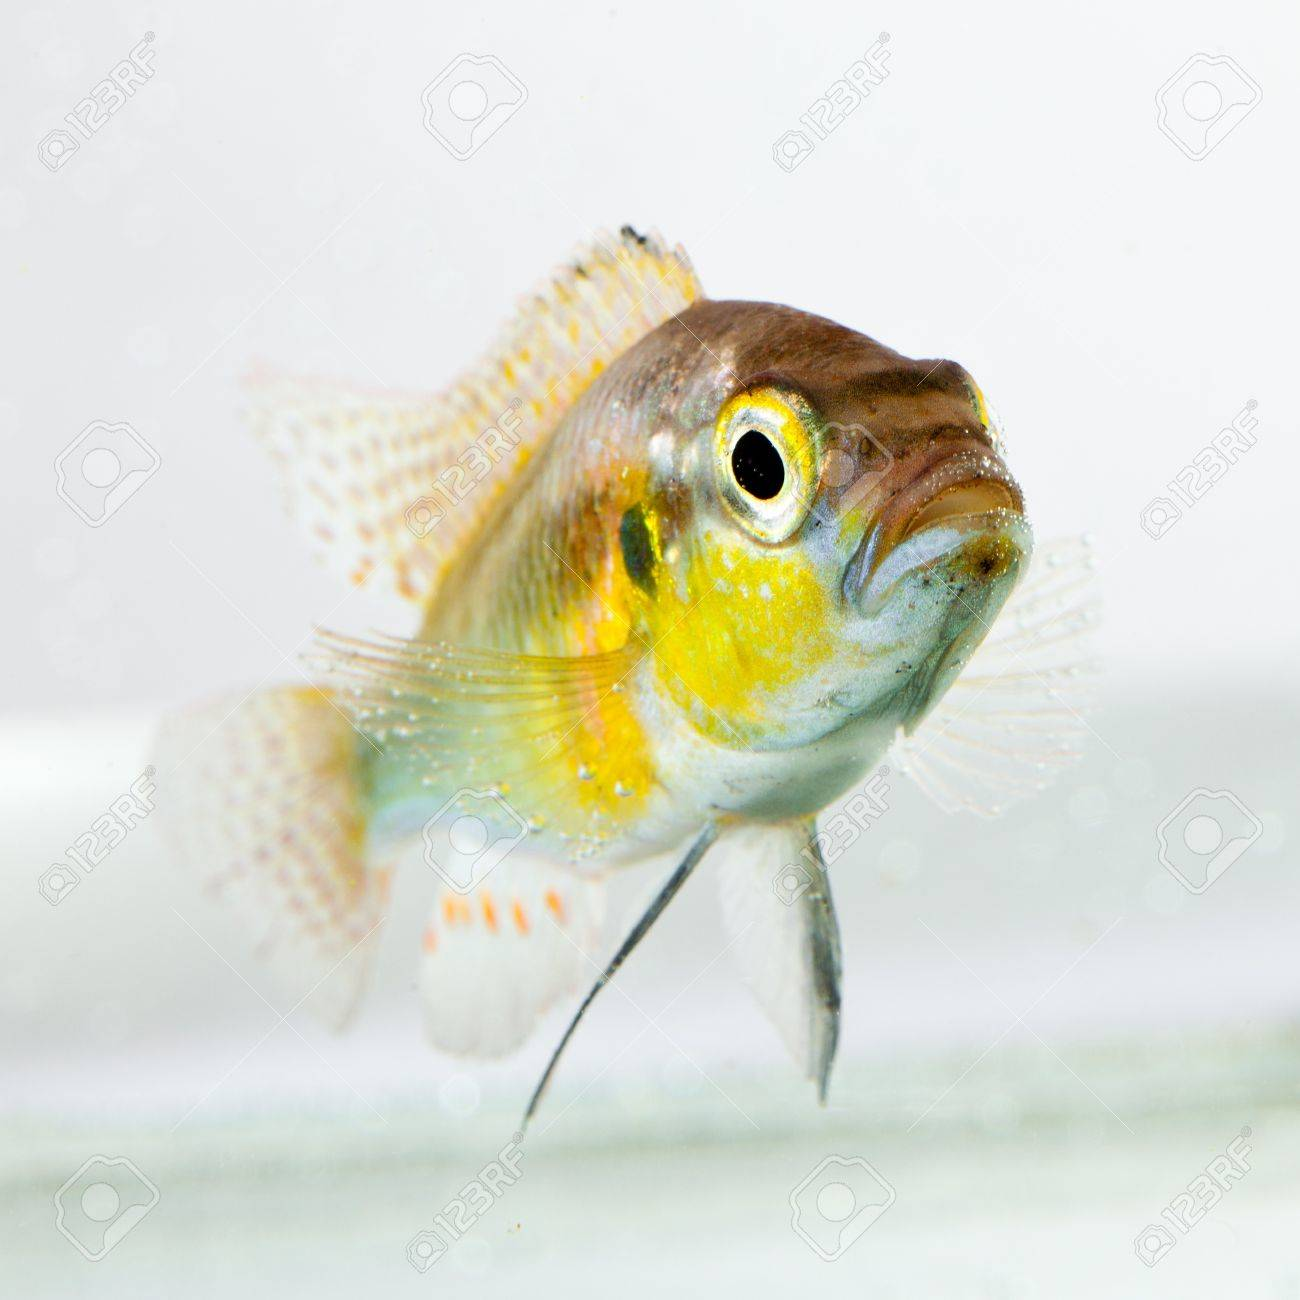 cichlid fish (Geophagus surinamensis) on a white background Stock Photo - 15160971